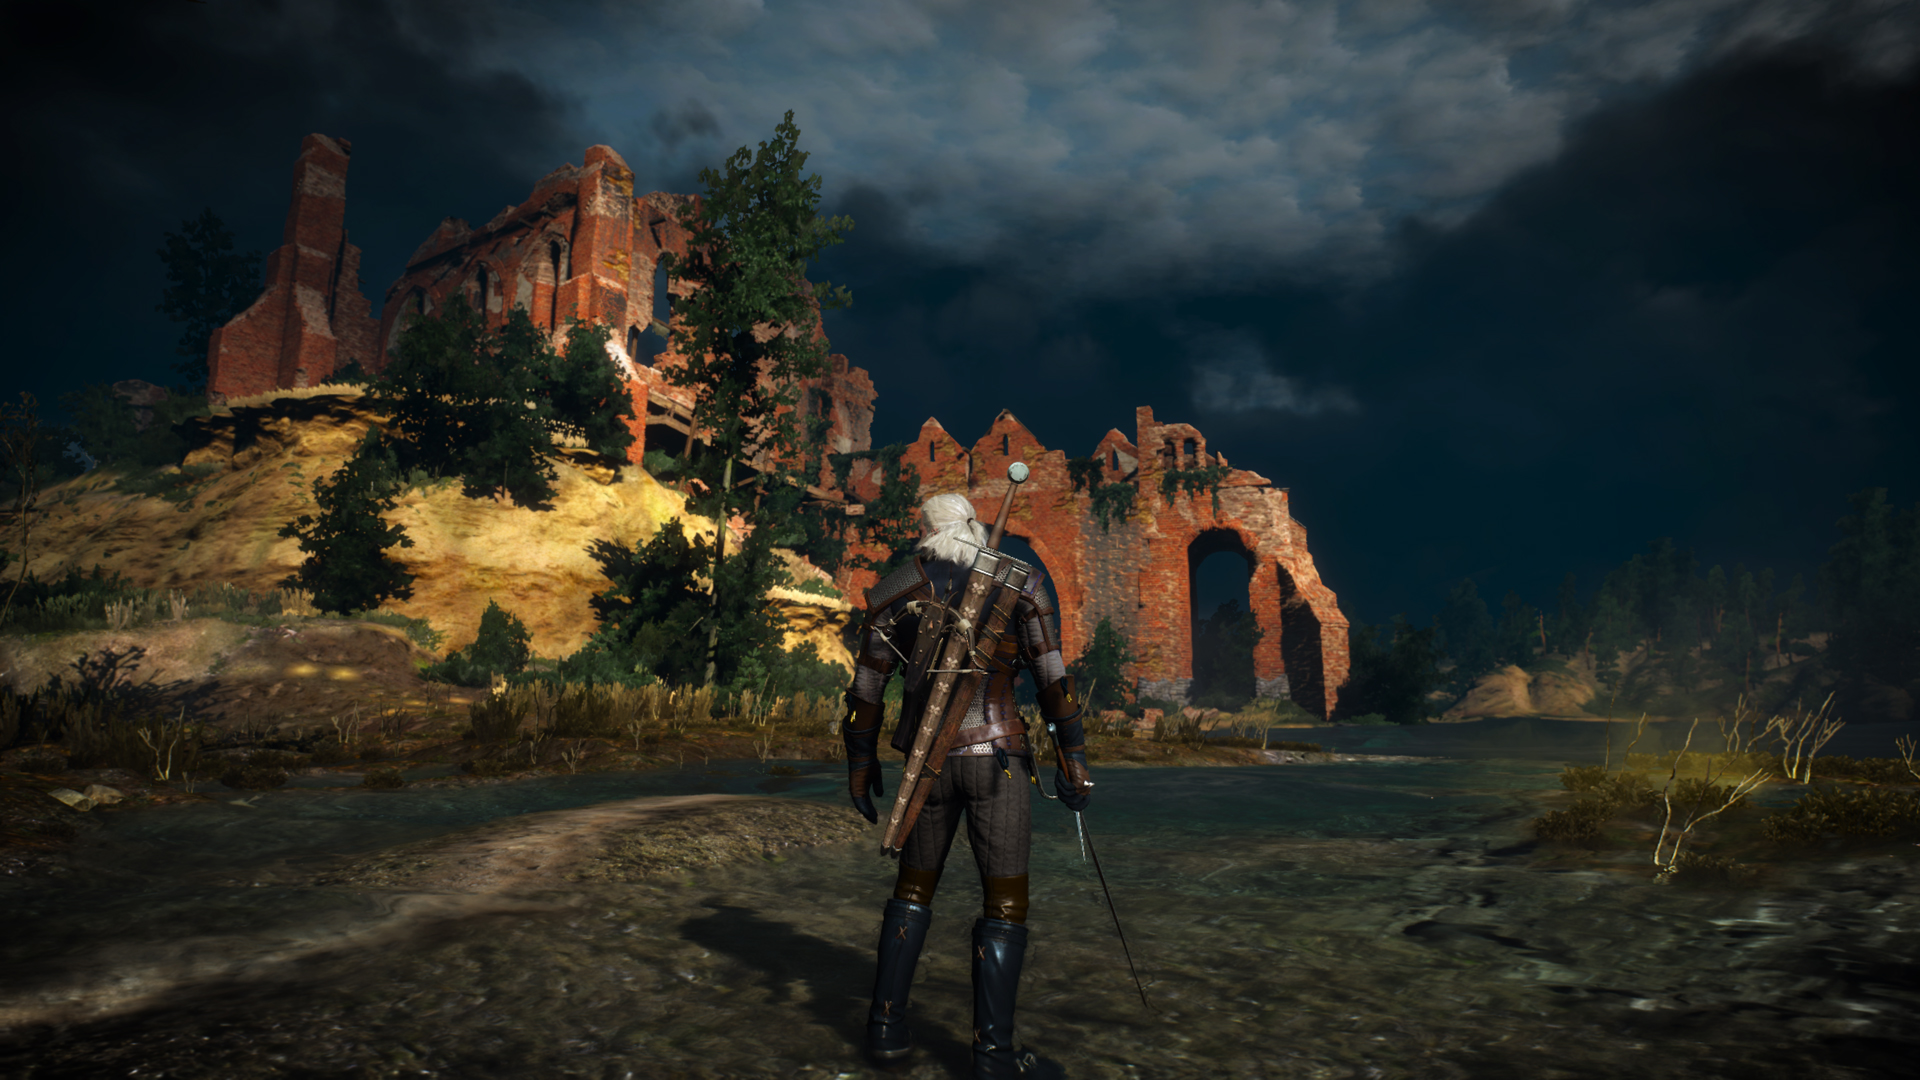 Witcher 3 on Xbox One X